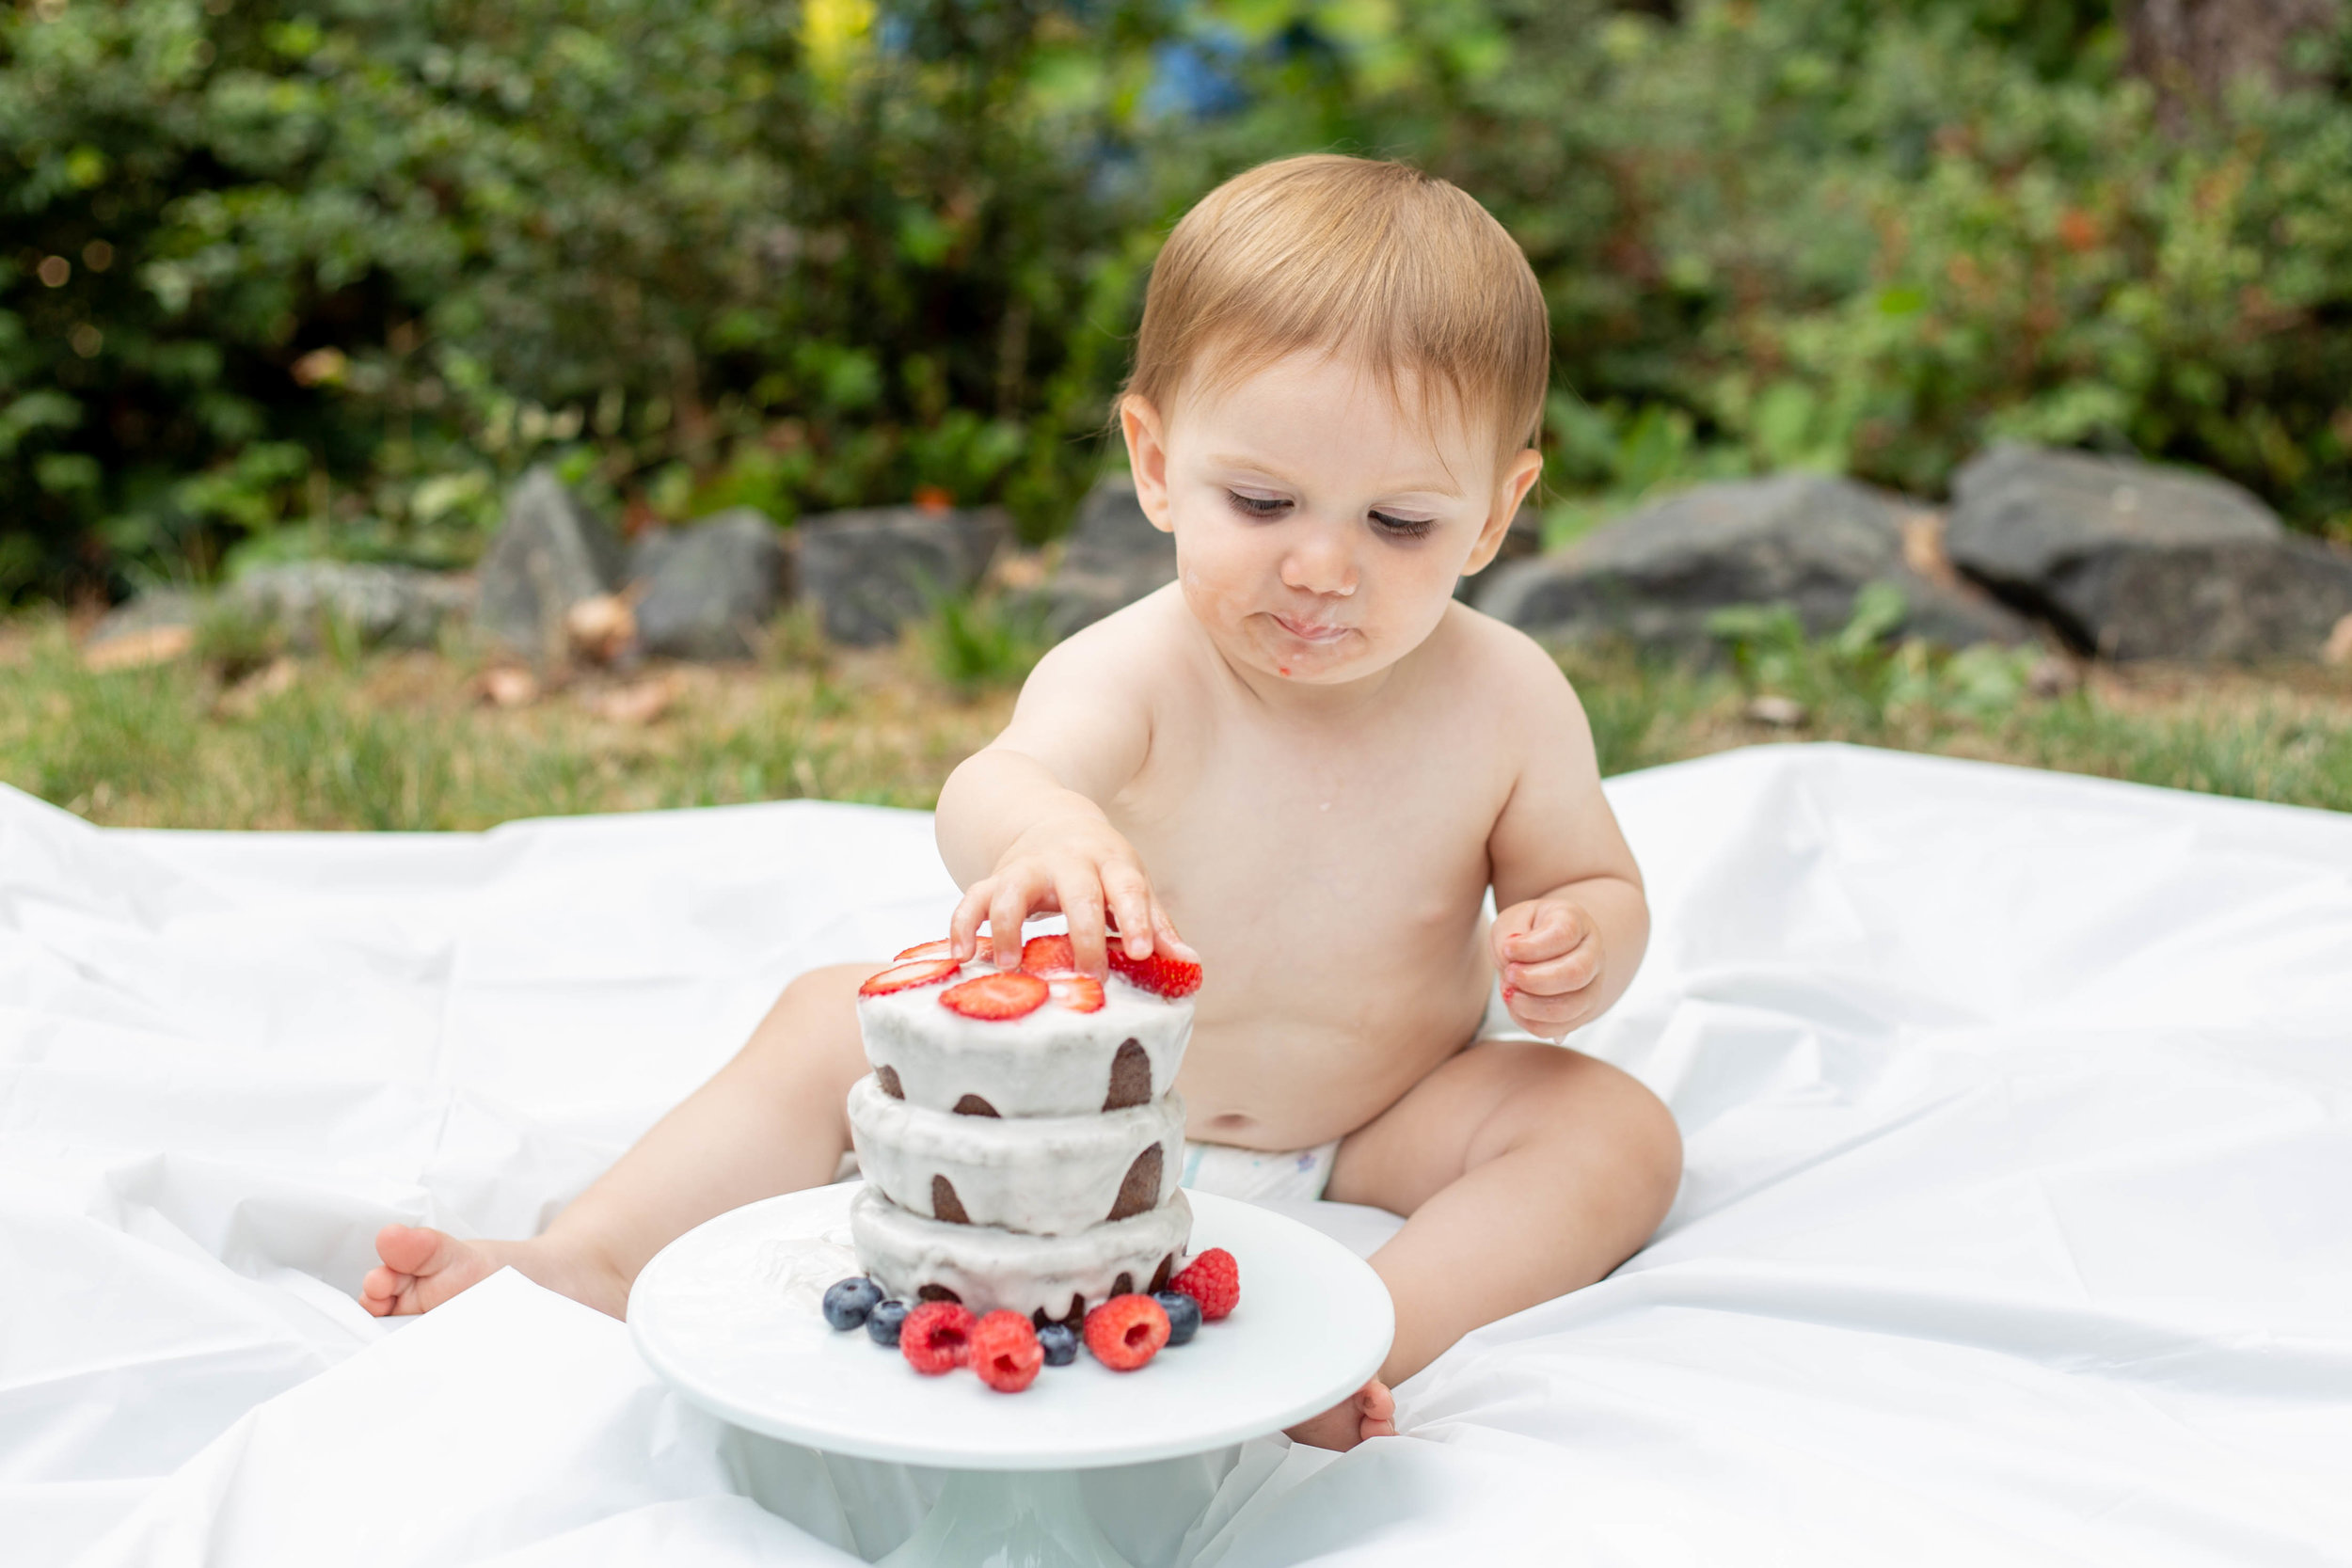 Cake Smash - Cake Smash sessions are for baby only and should be done as close to baby's actual birthday as possible and can be done on the same day as a 1 Year session. Cake not provided.